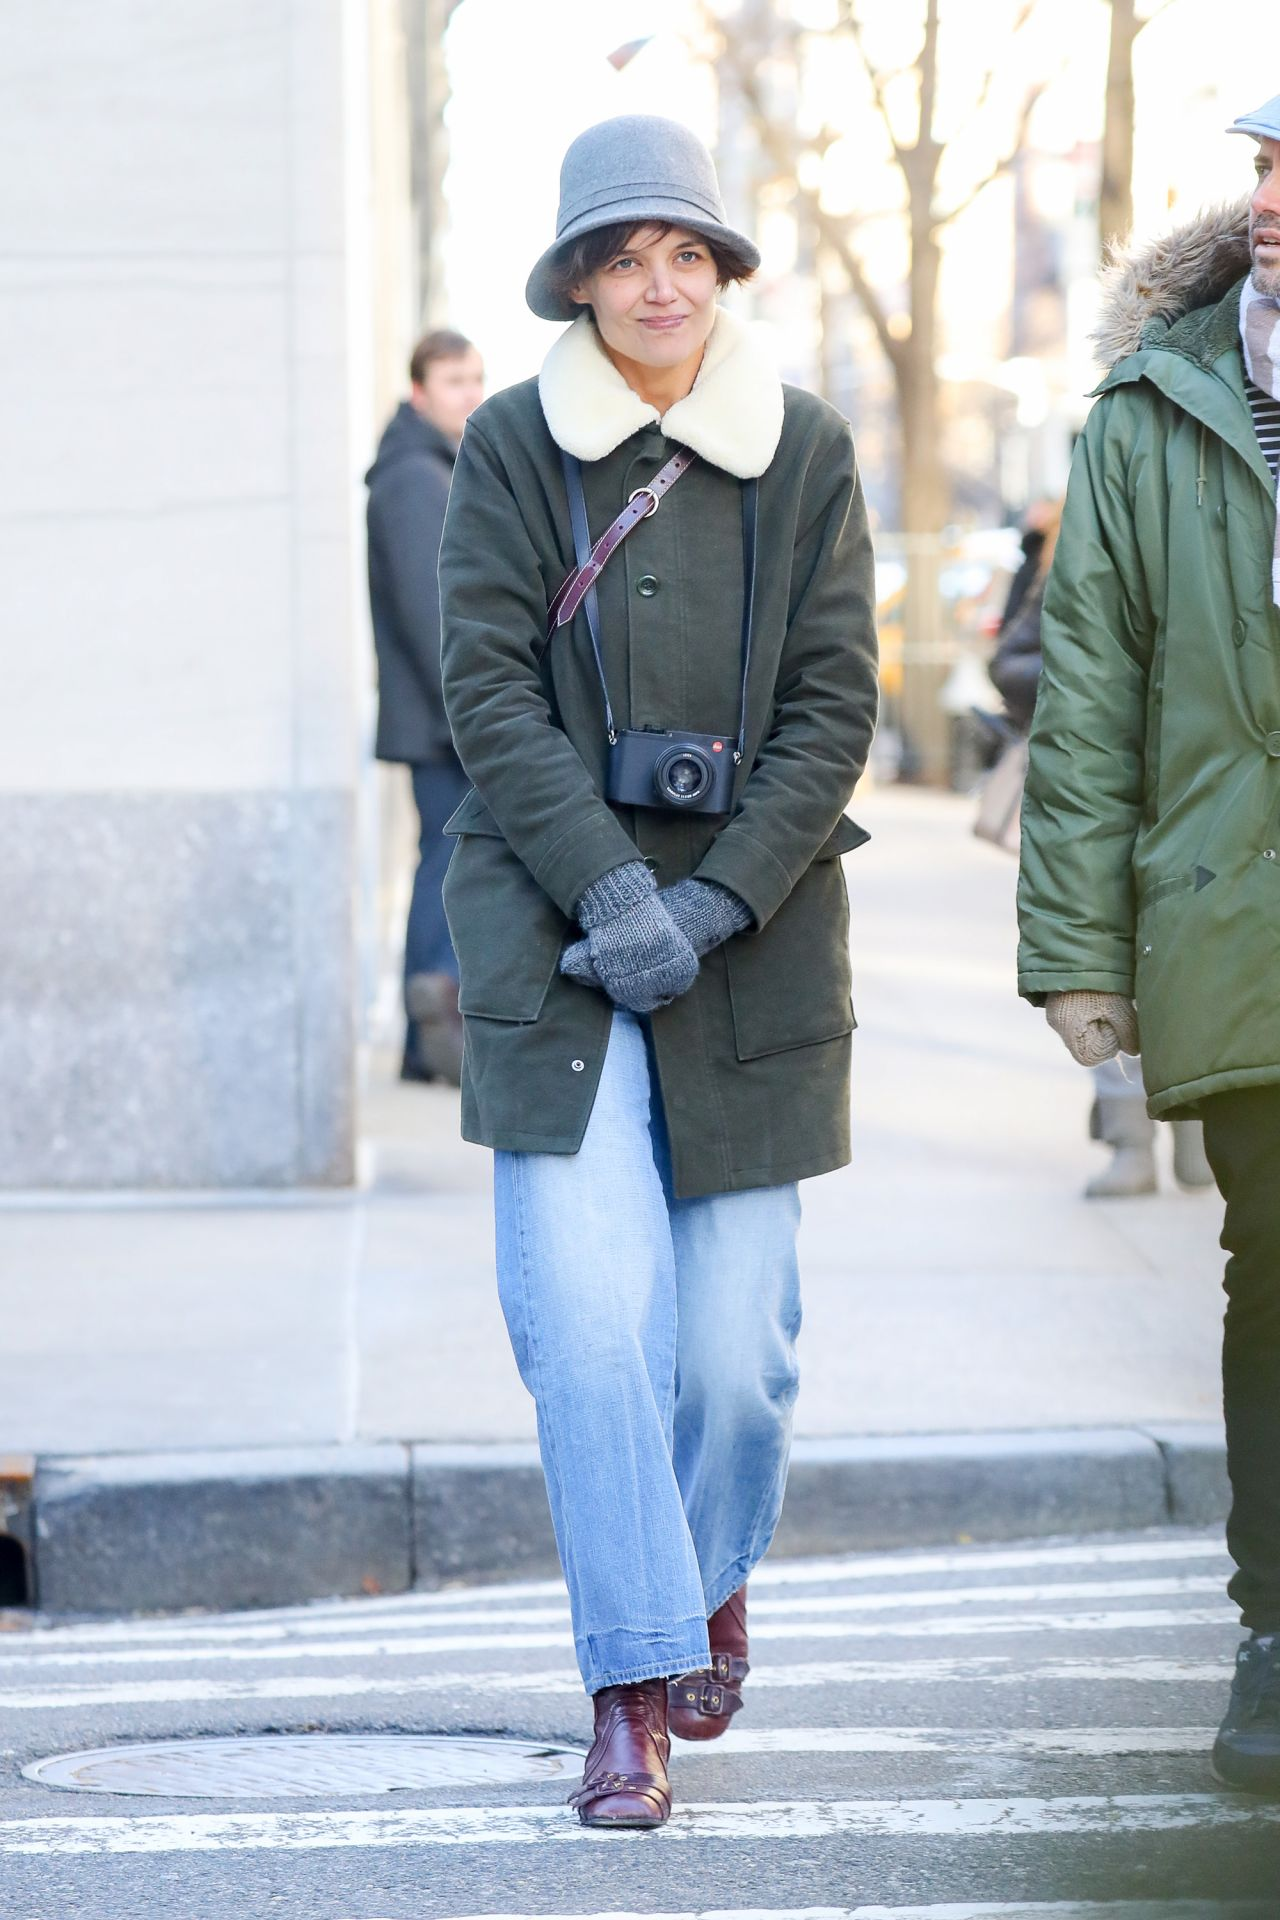 Katie Holmes in Cute Winter Outfit in NYC